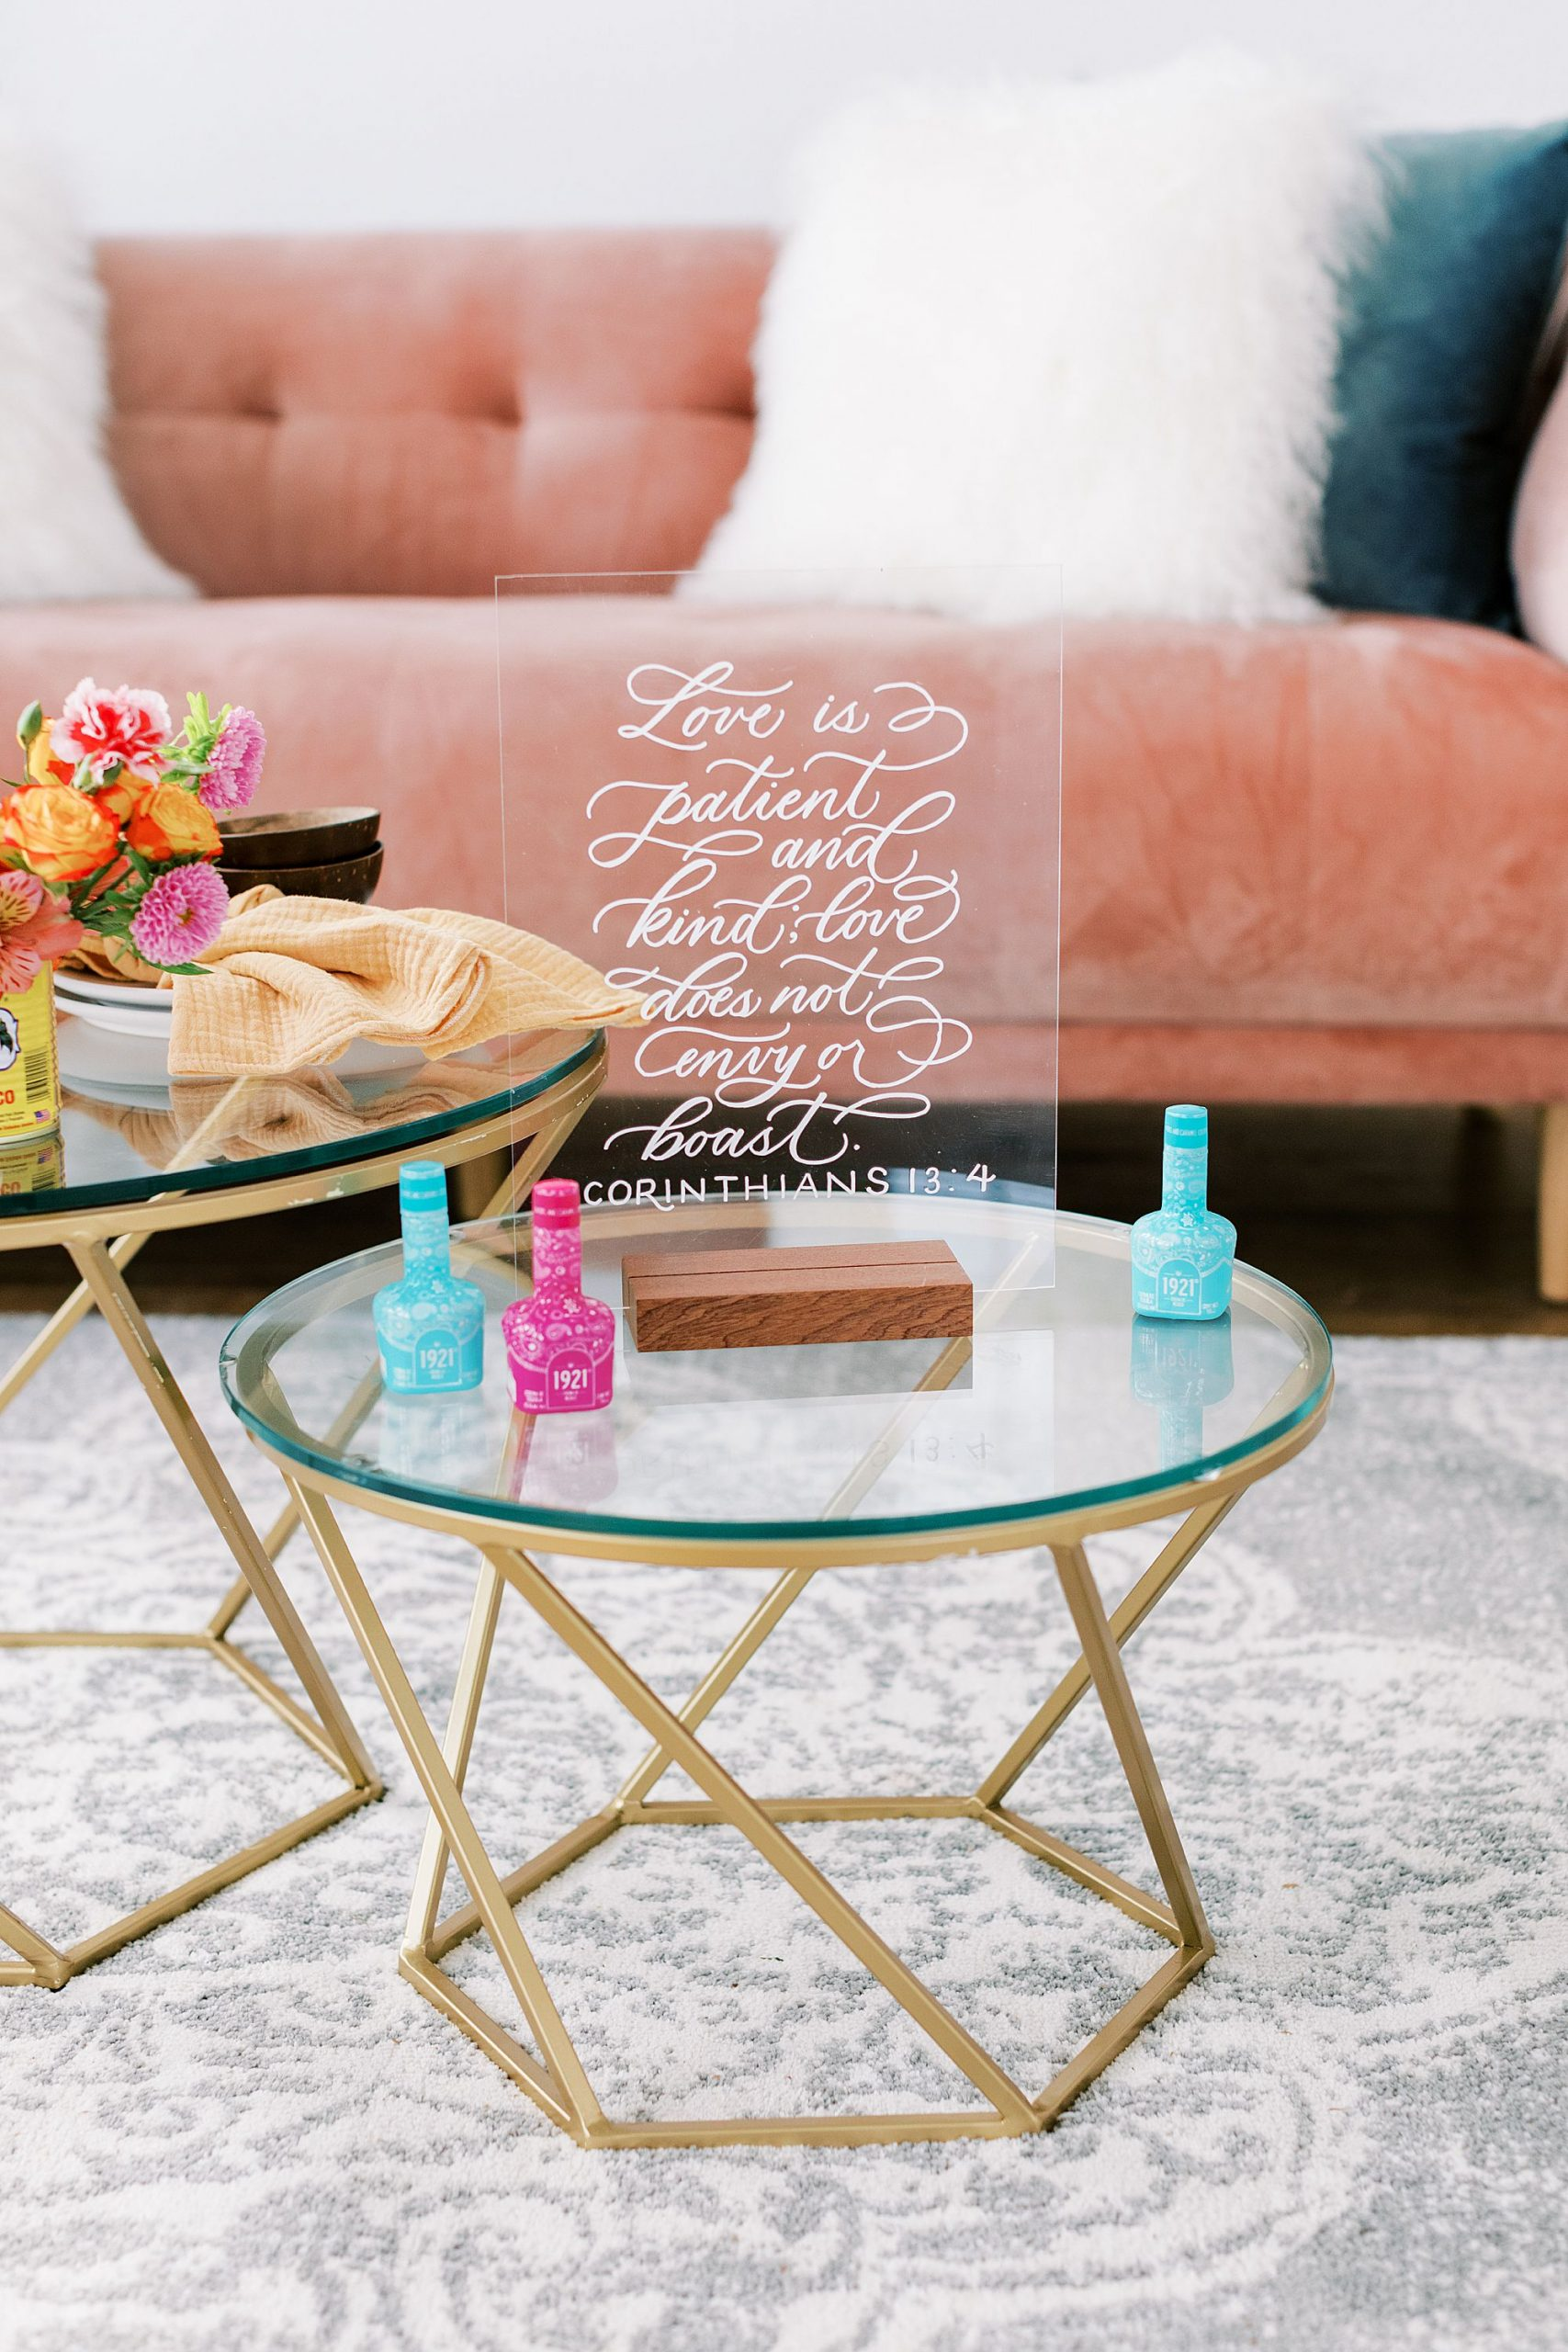 Cinco De Mayo Inspiration for Your FIesta - Party Crush Studio and Ashley Baumgartner_0015.jpg